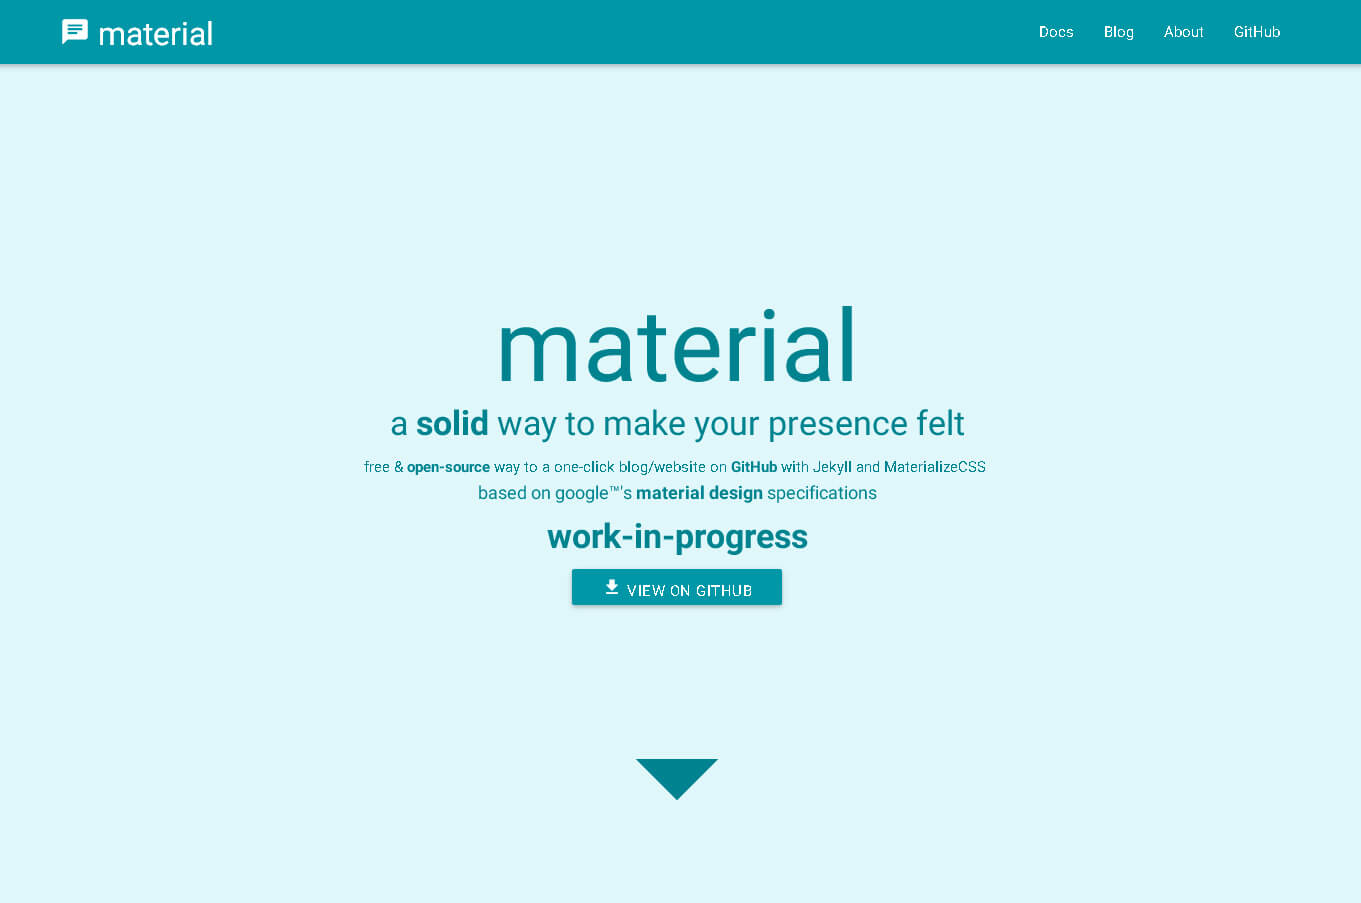 material-blog-theme-free